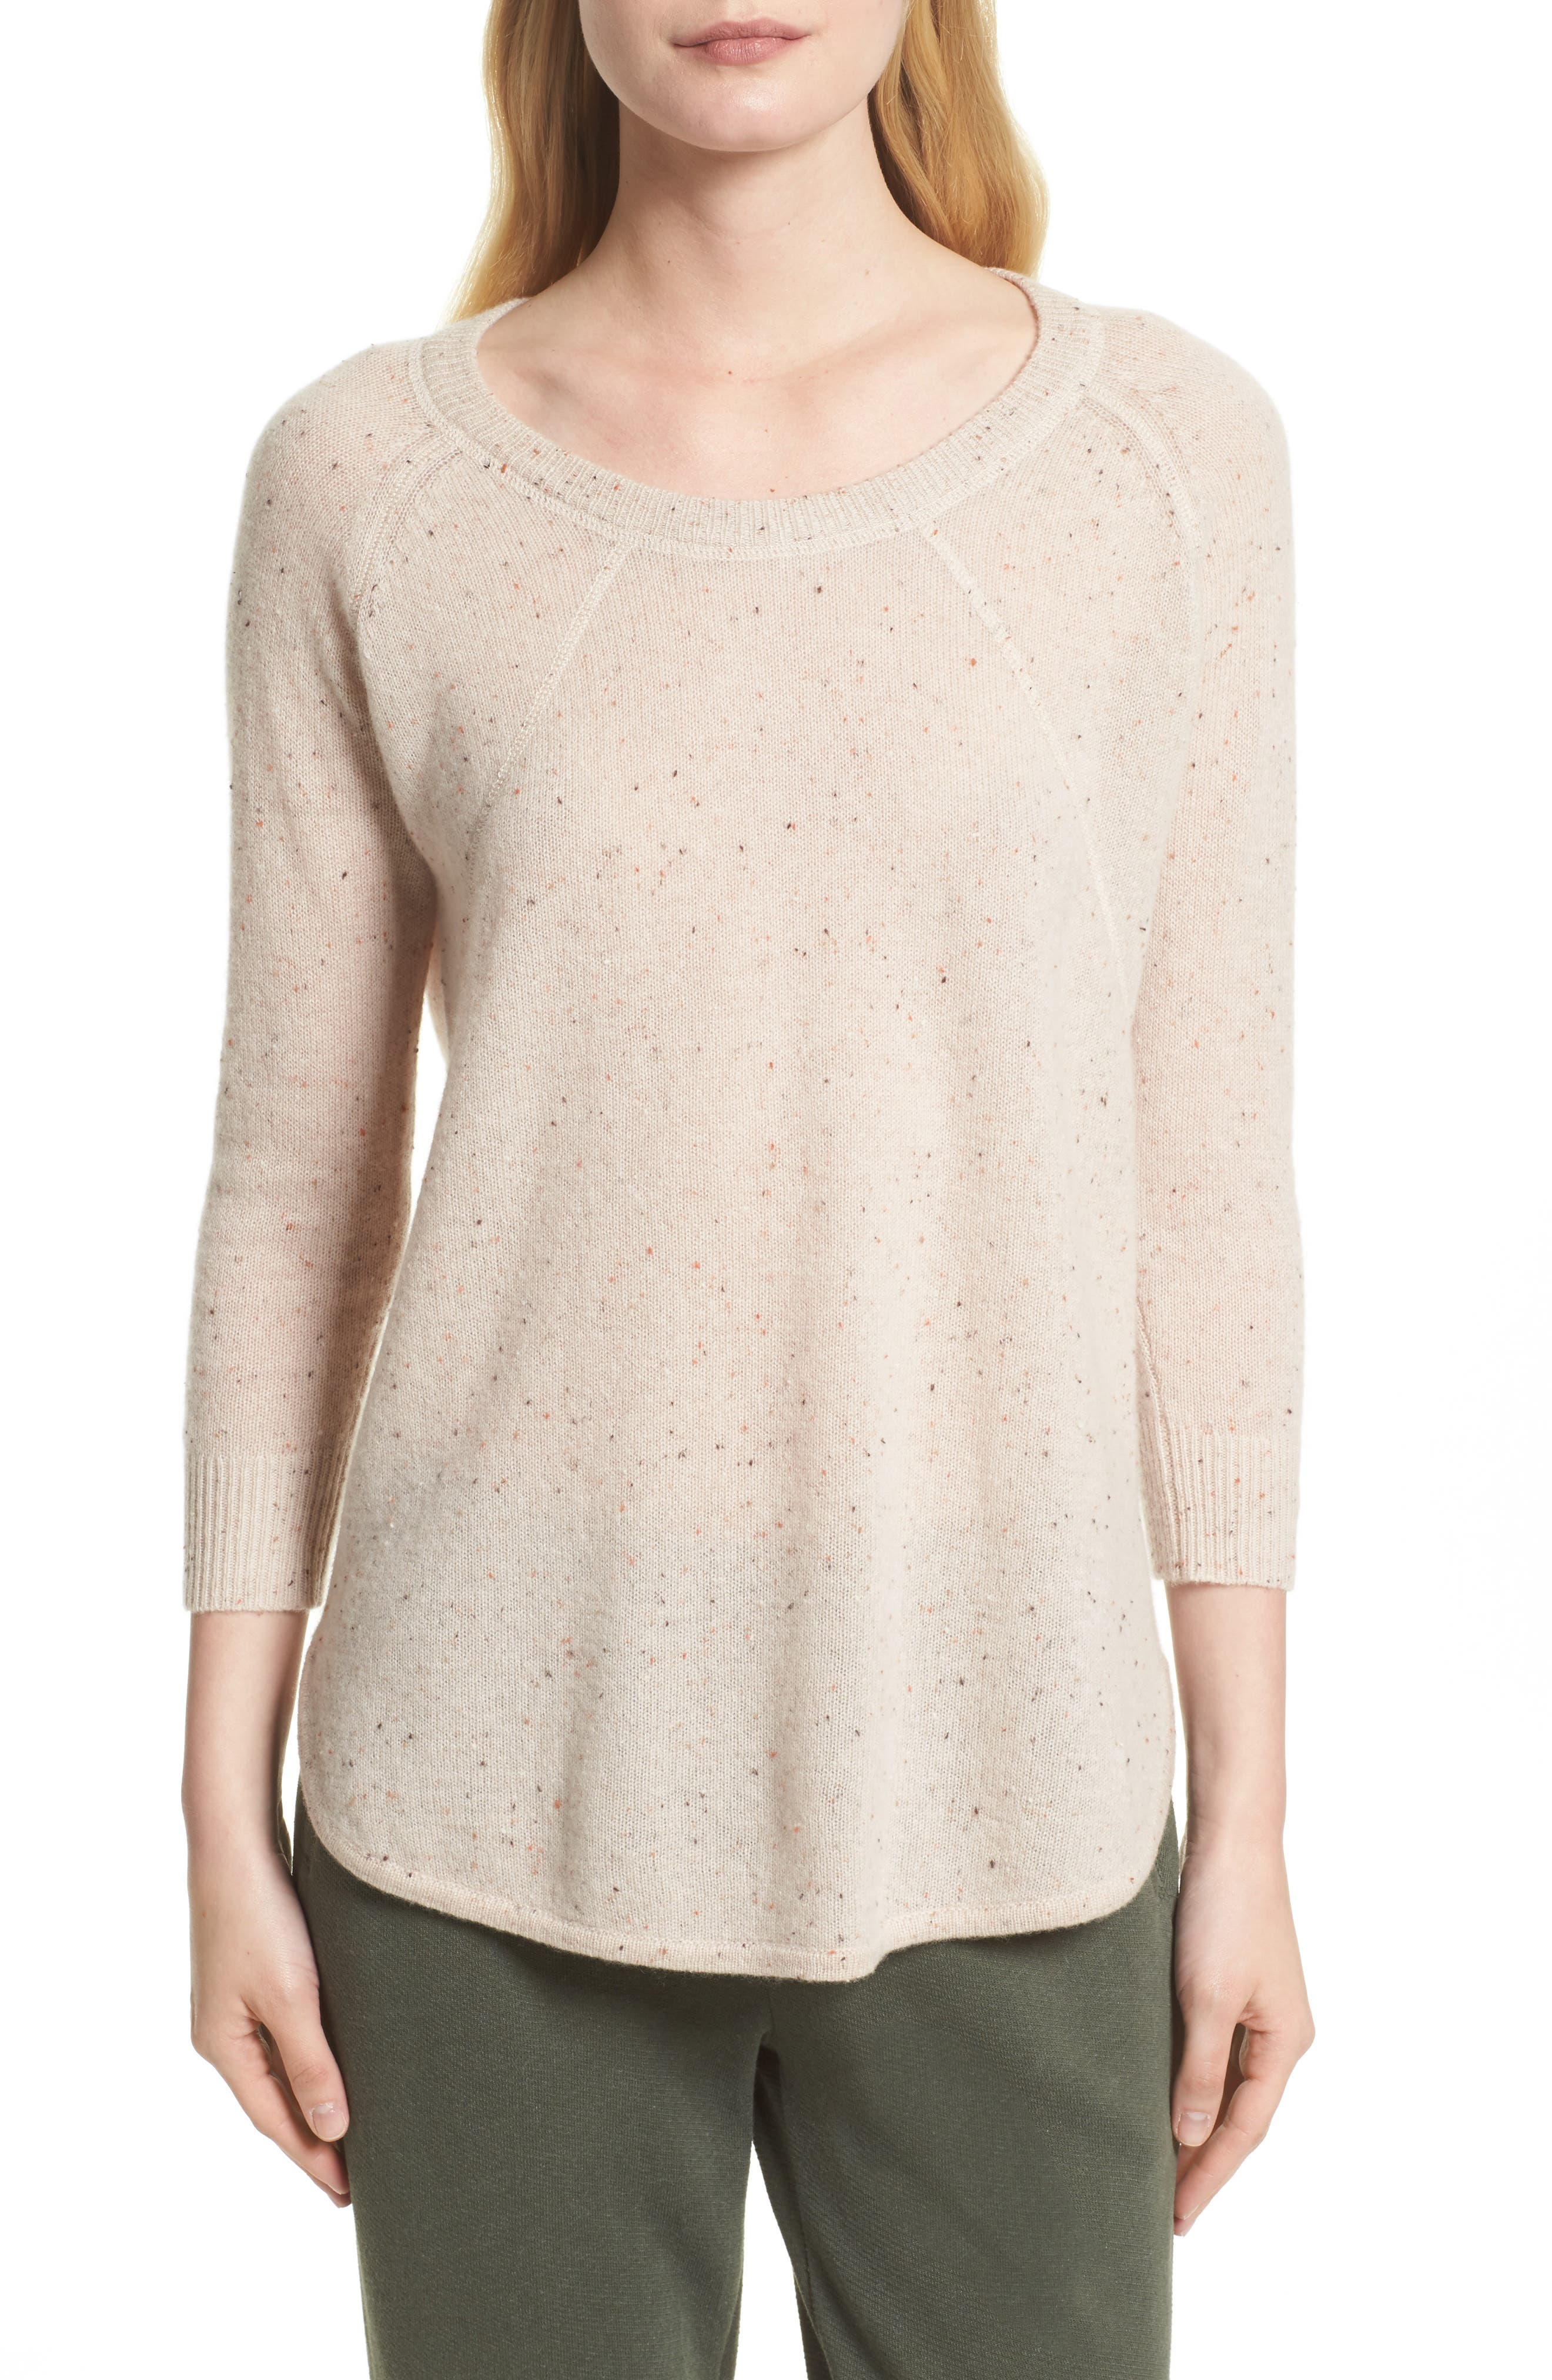 Alternate Image 1 Selected - ATM Anthony Thomas Melillo Cashmere Sweater (Nordstrom Exclusive)